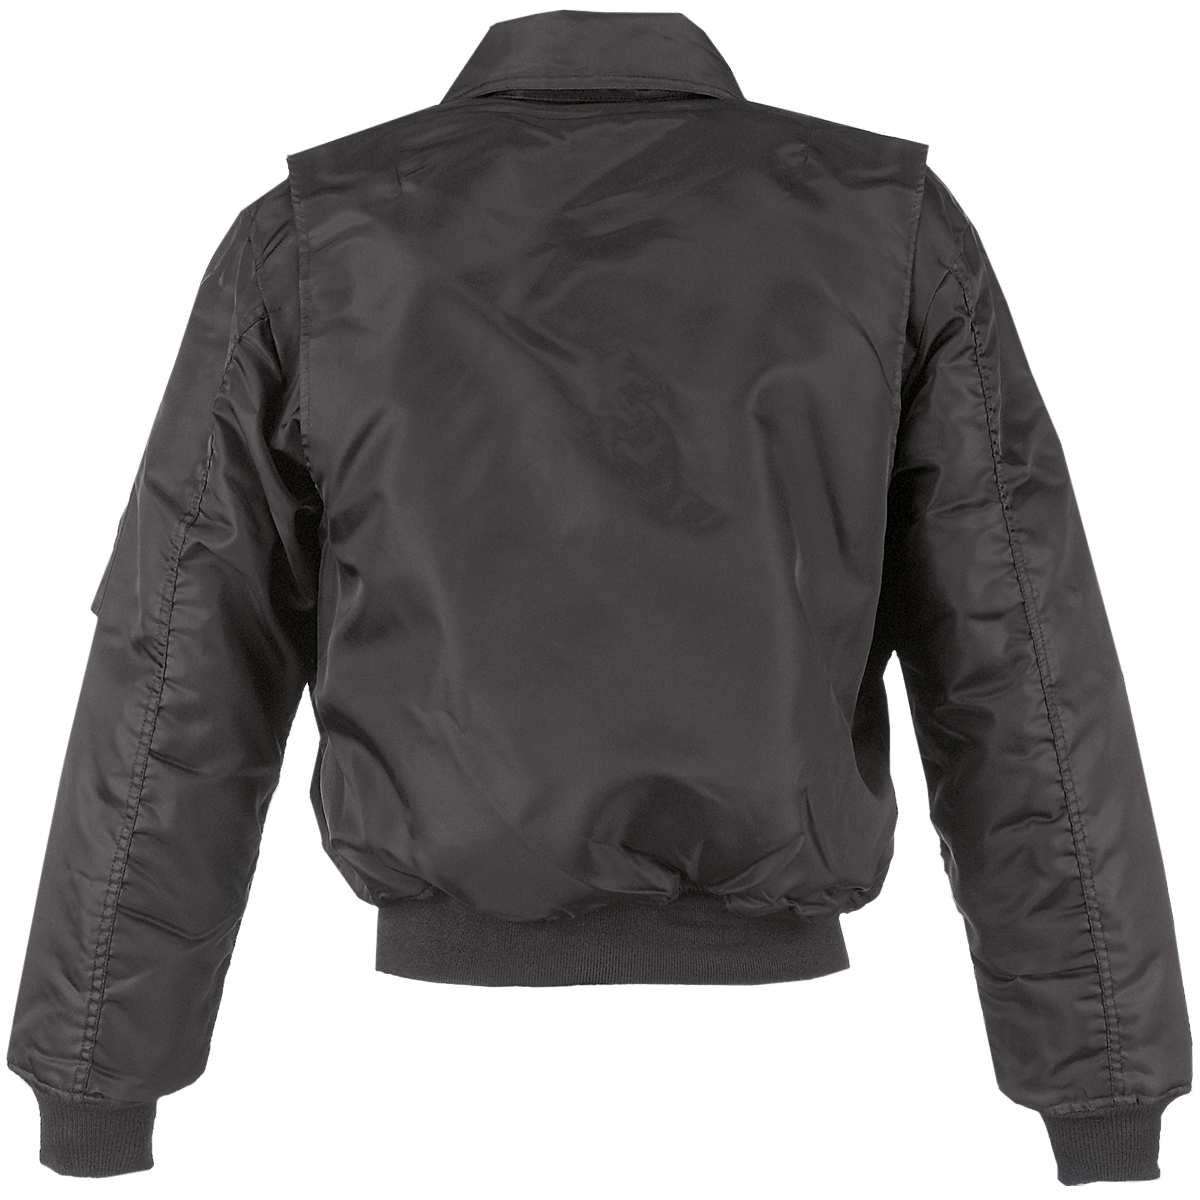 Brandit CWU Jacket Tactical Mens Bomber Flight Police ...